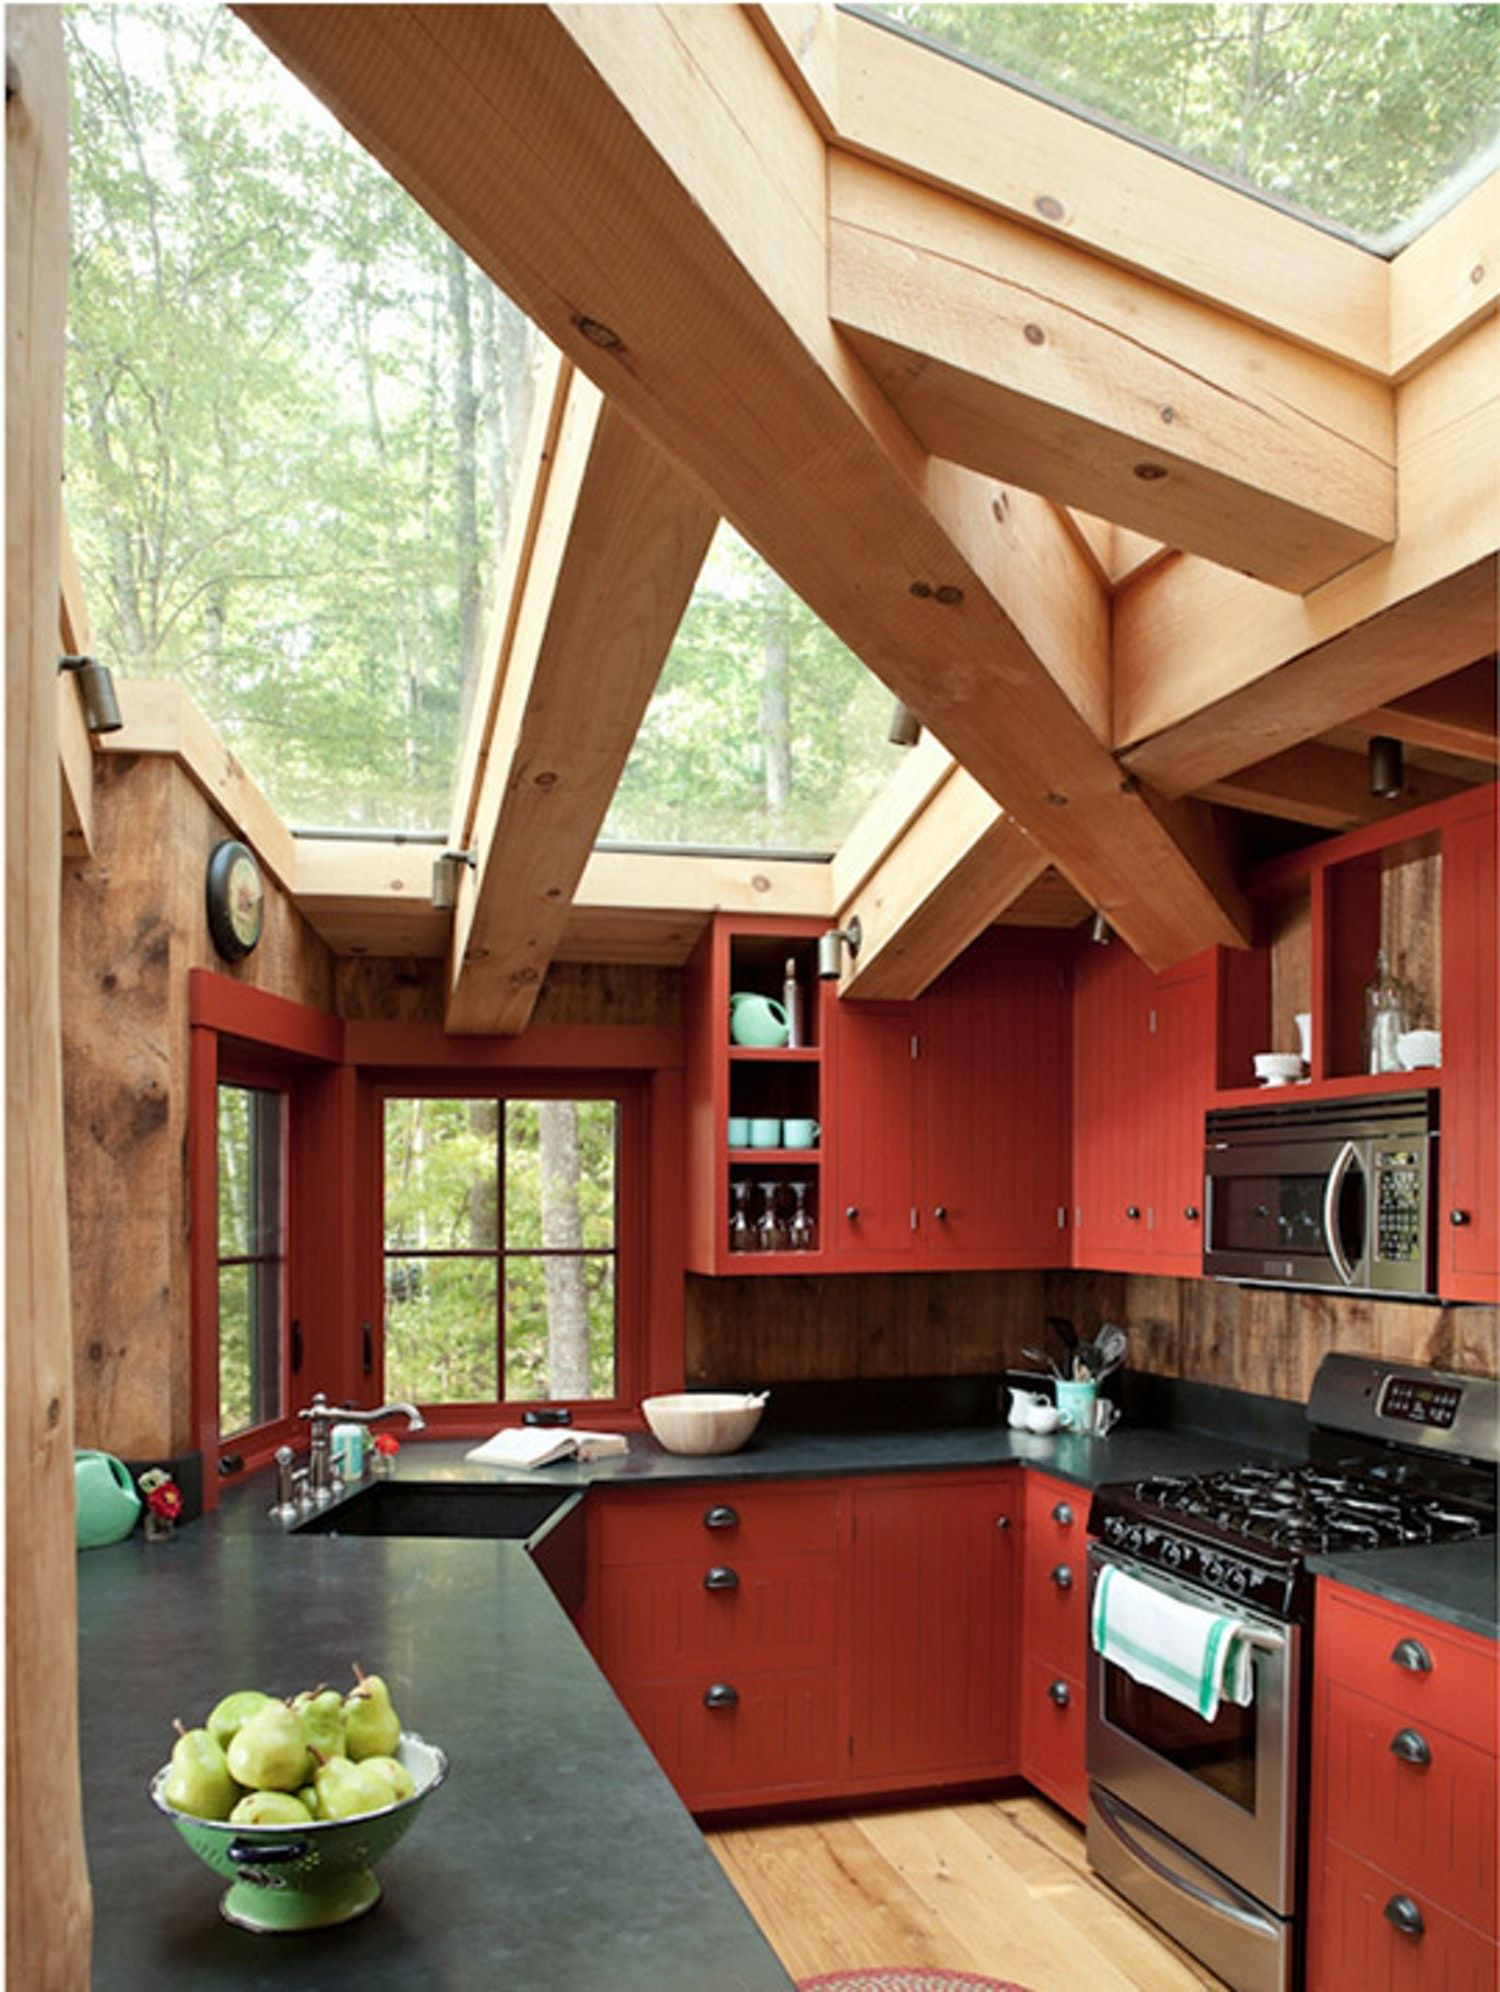 Red Cabinets and Plenty of Light: A Cottage Kitchen in Maine | Küche